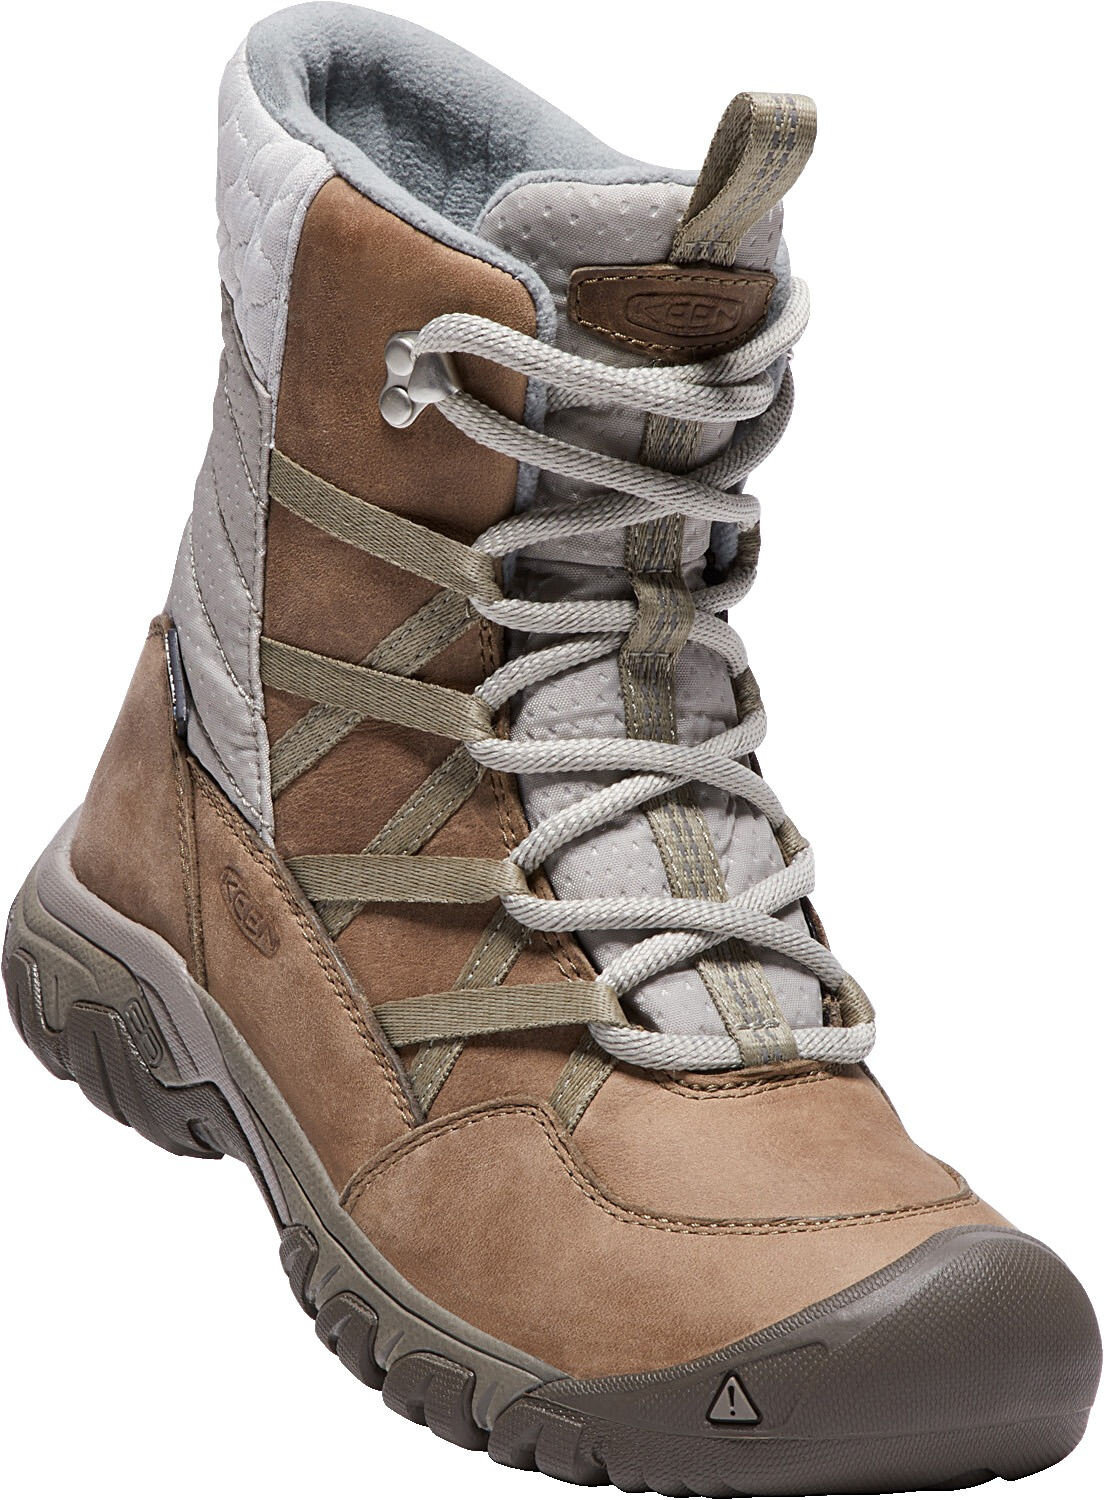 c61d66b4ab Keen Hoodoo III Lace Up Shoes Women brown/white at Addnature.co.uk